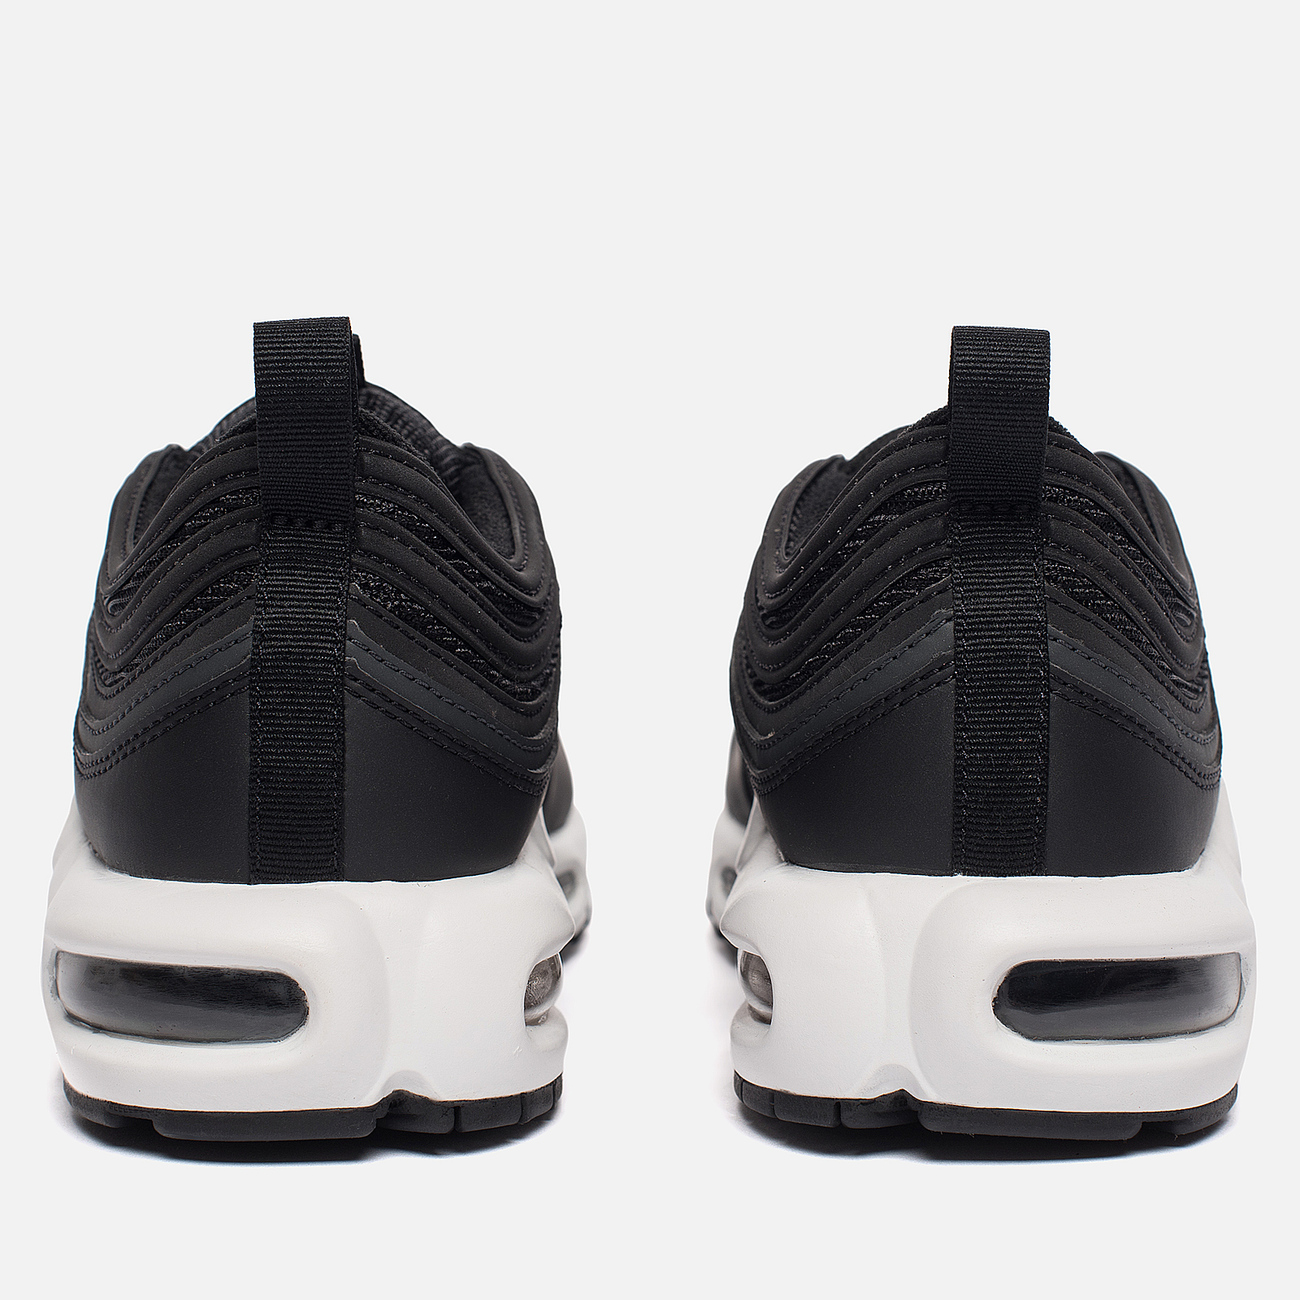 Кроссовки Nike Air Max Plus 97 AH8143 001